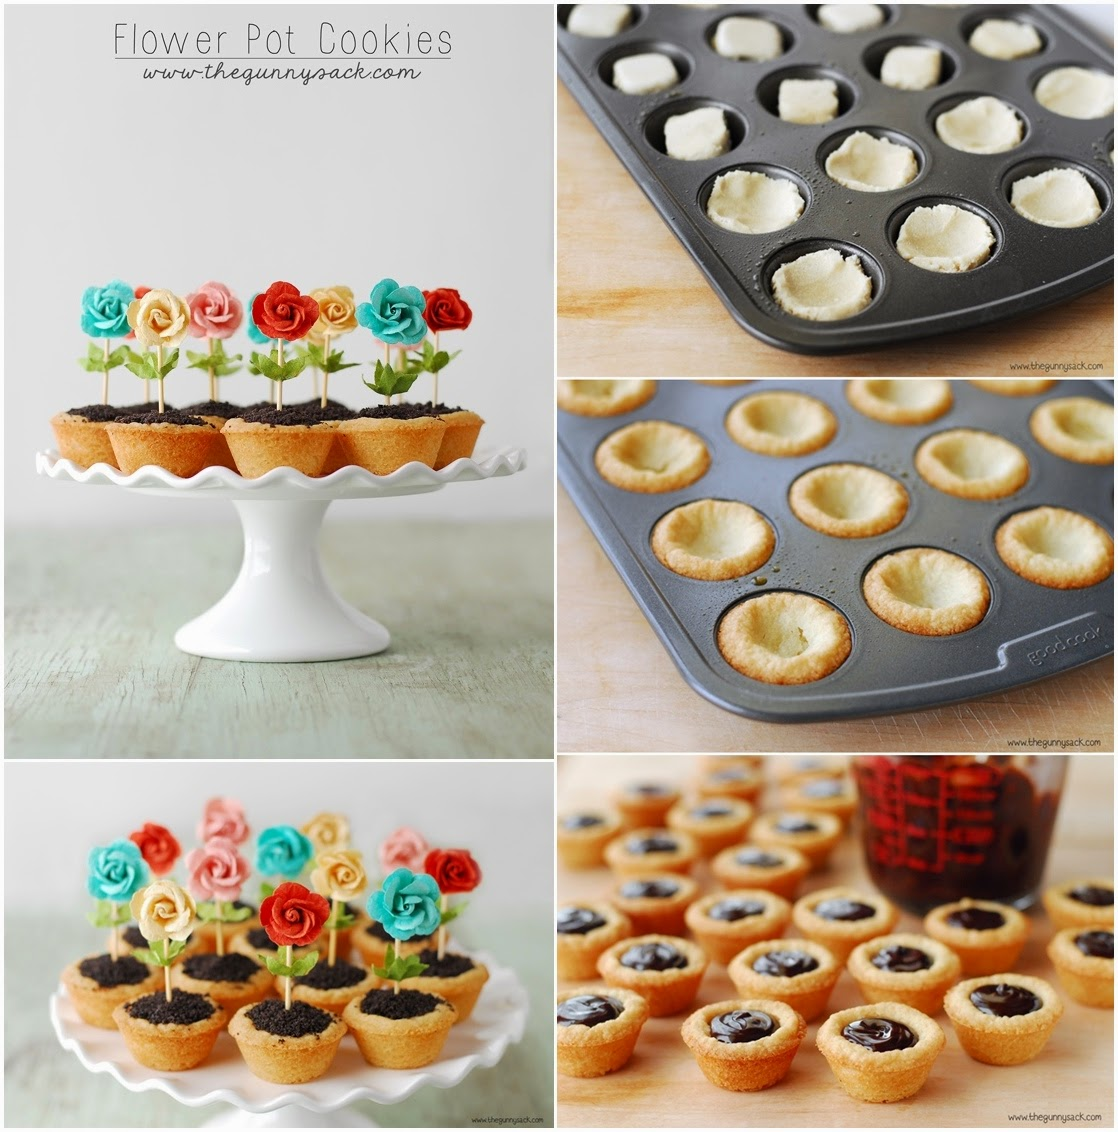 226 & Flower Pot Cookies - DIY Craft Projects